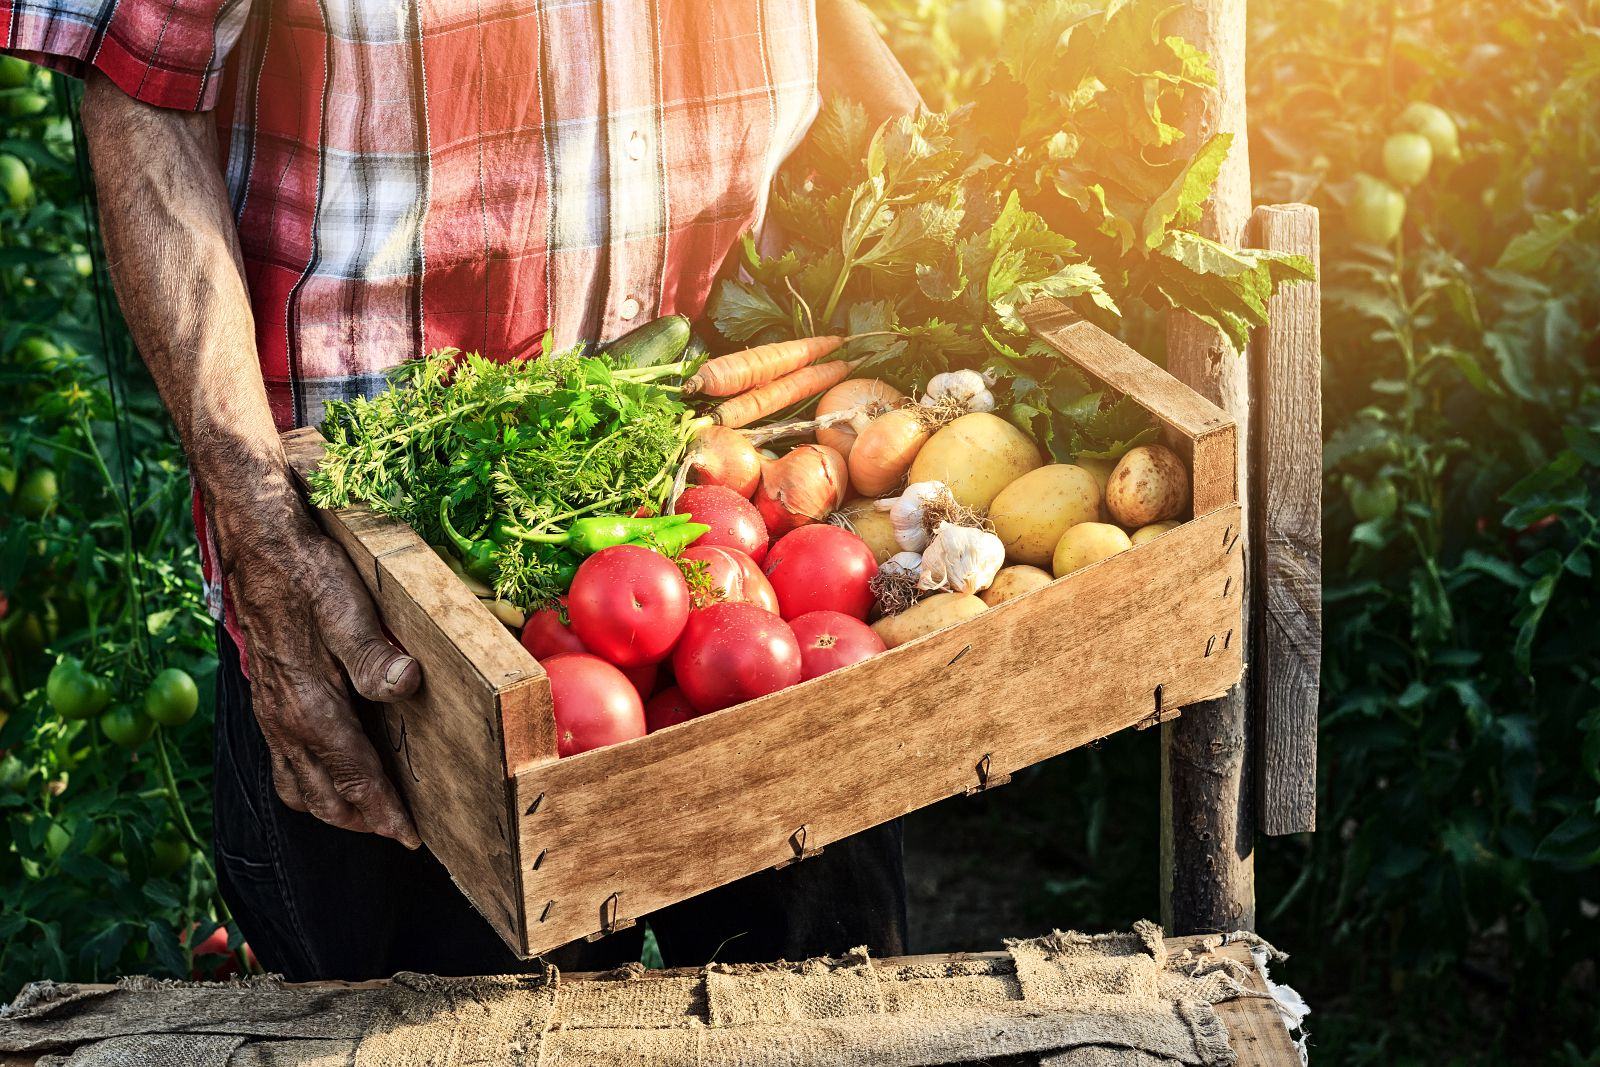 Csa Montreal Organic Food Baskets Pros And Cons